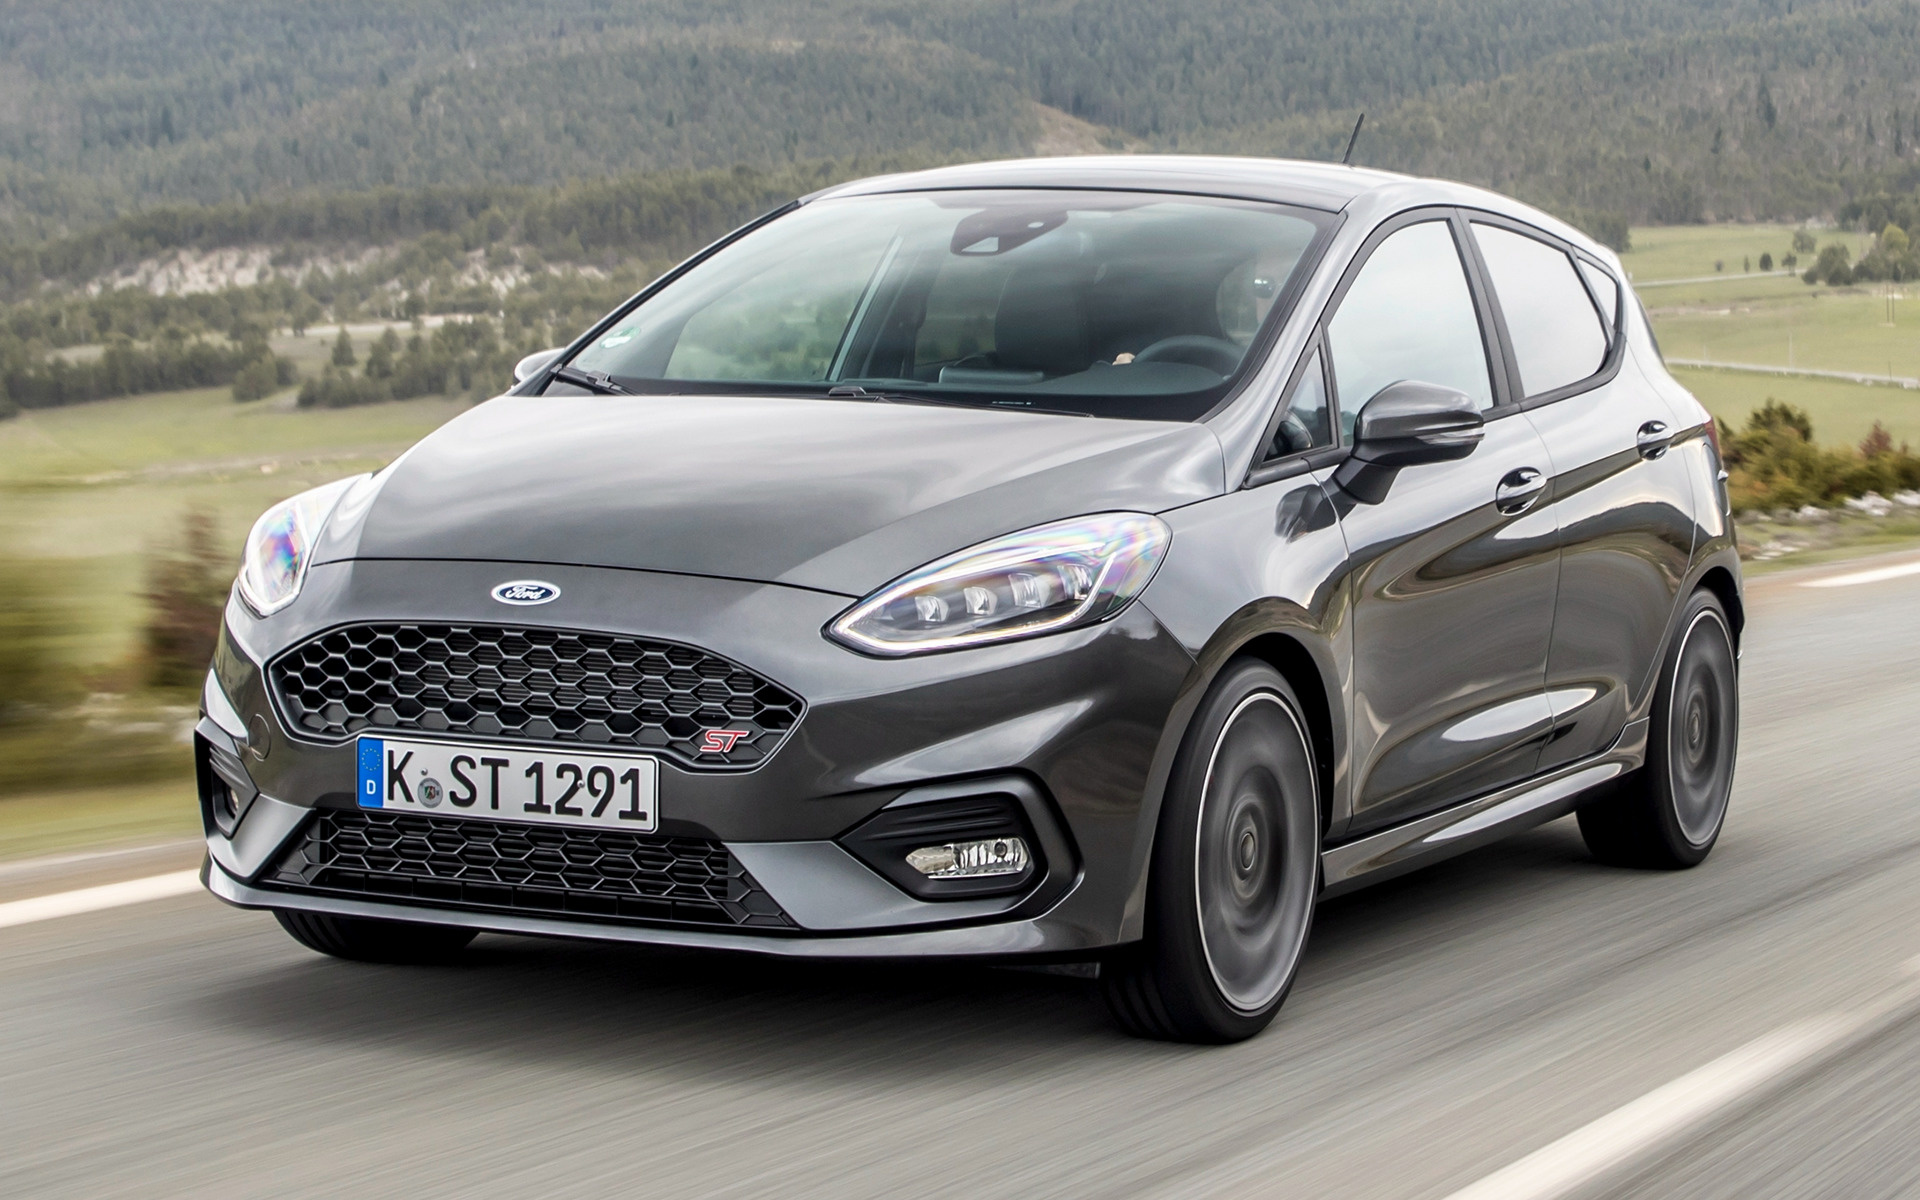 Ford Fiesta St 1144210 Hd Wallpaper Backgrounds Download